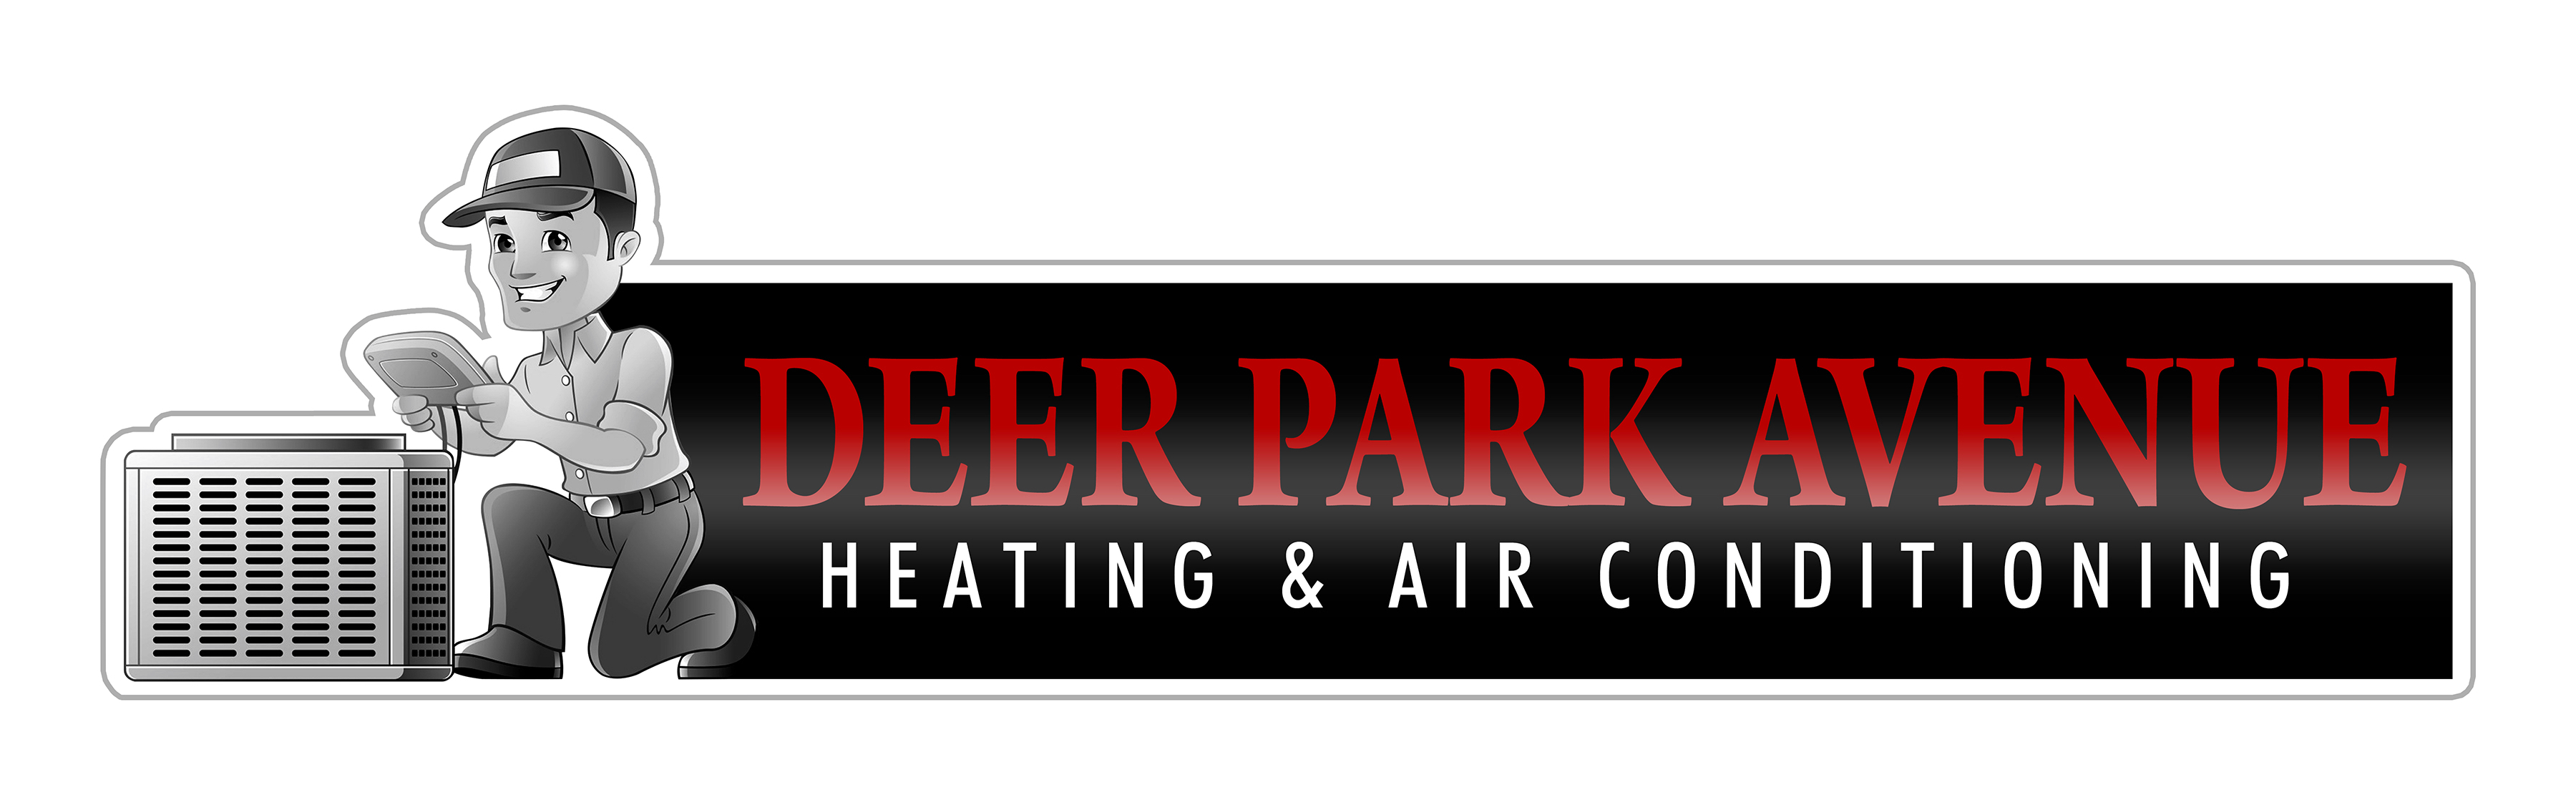 Deer Park Avenue Heating & A/C Corp.